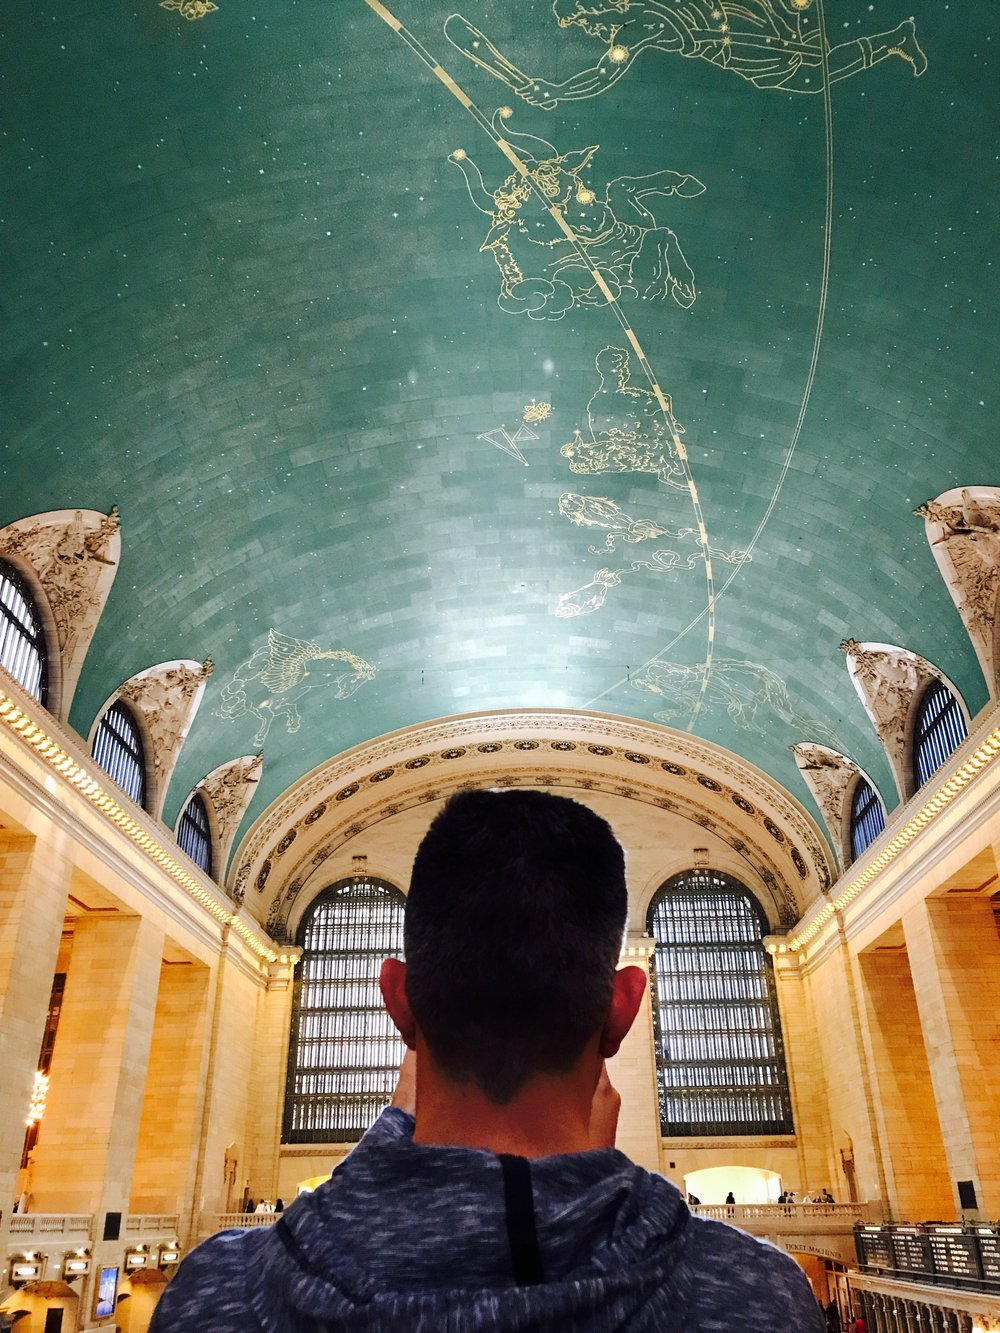 John's halo was showing in the Grand Central Station